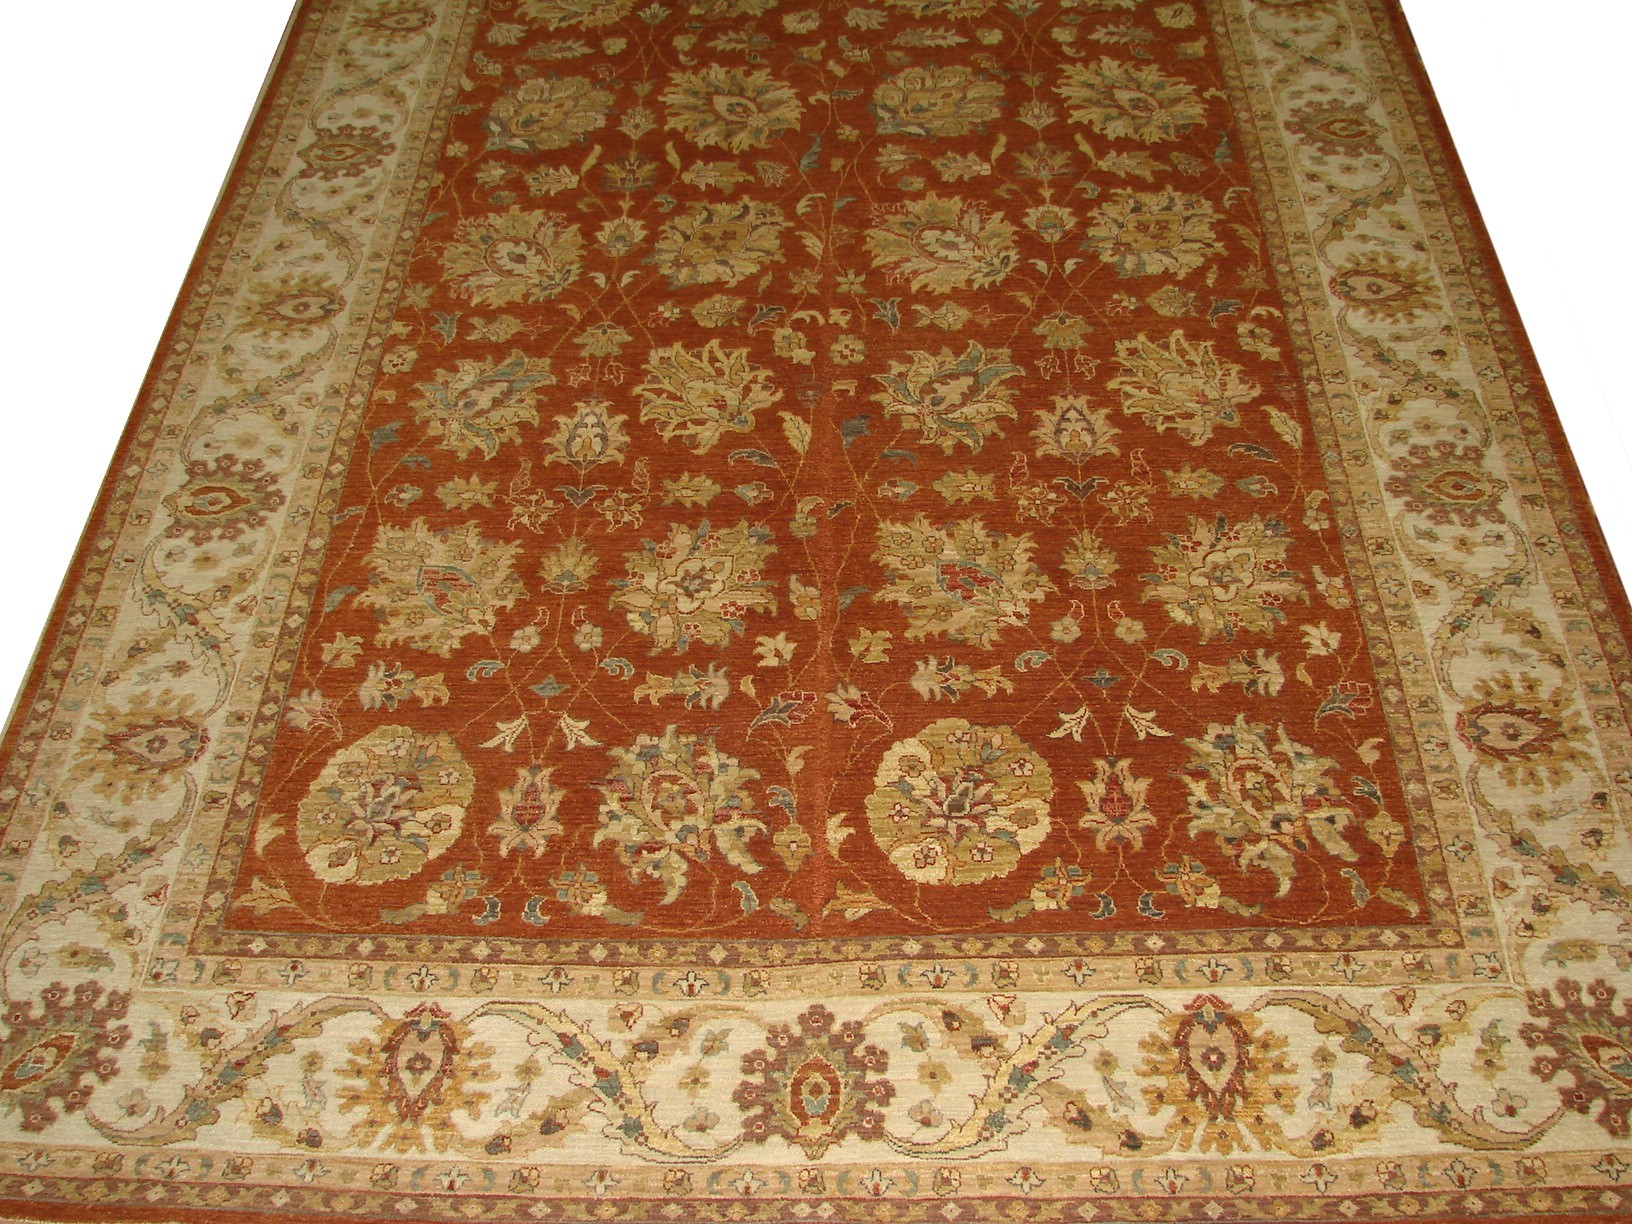 9x12 Traditional Hand Knotted Wool Area Rug - MR12268